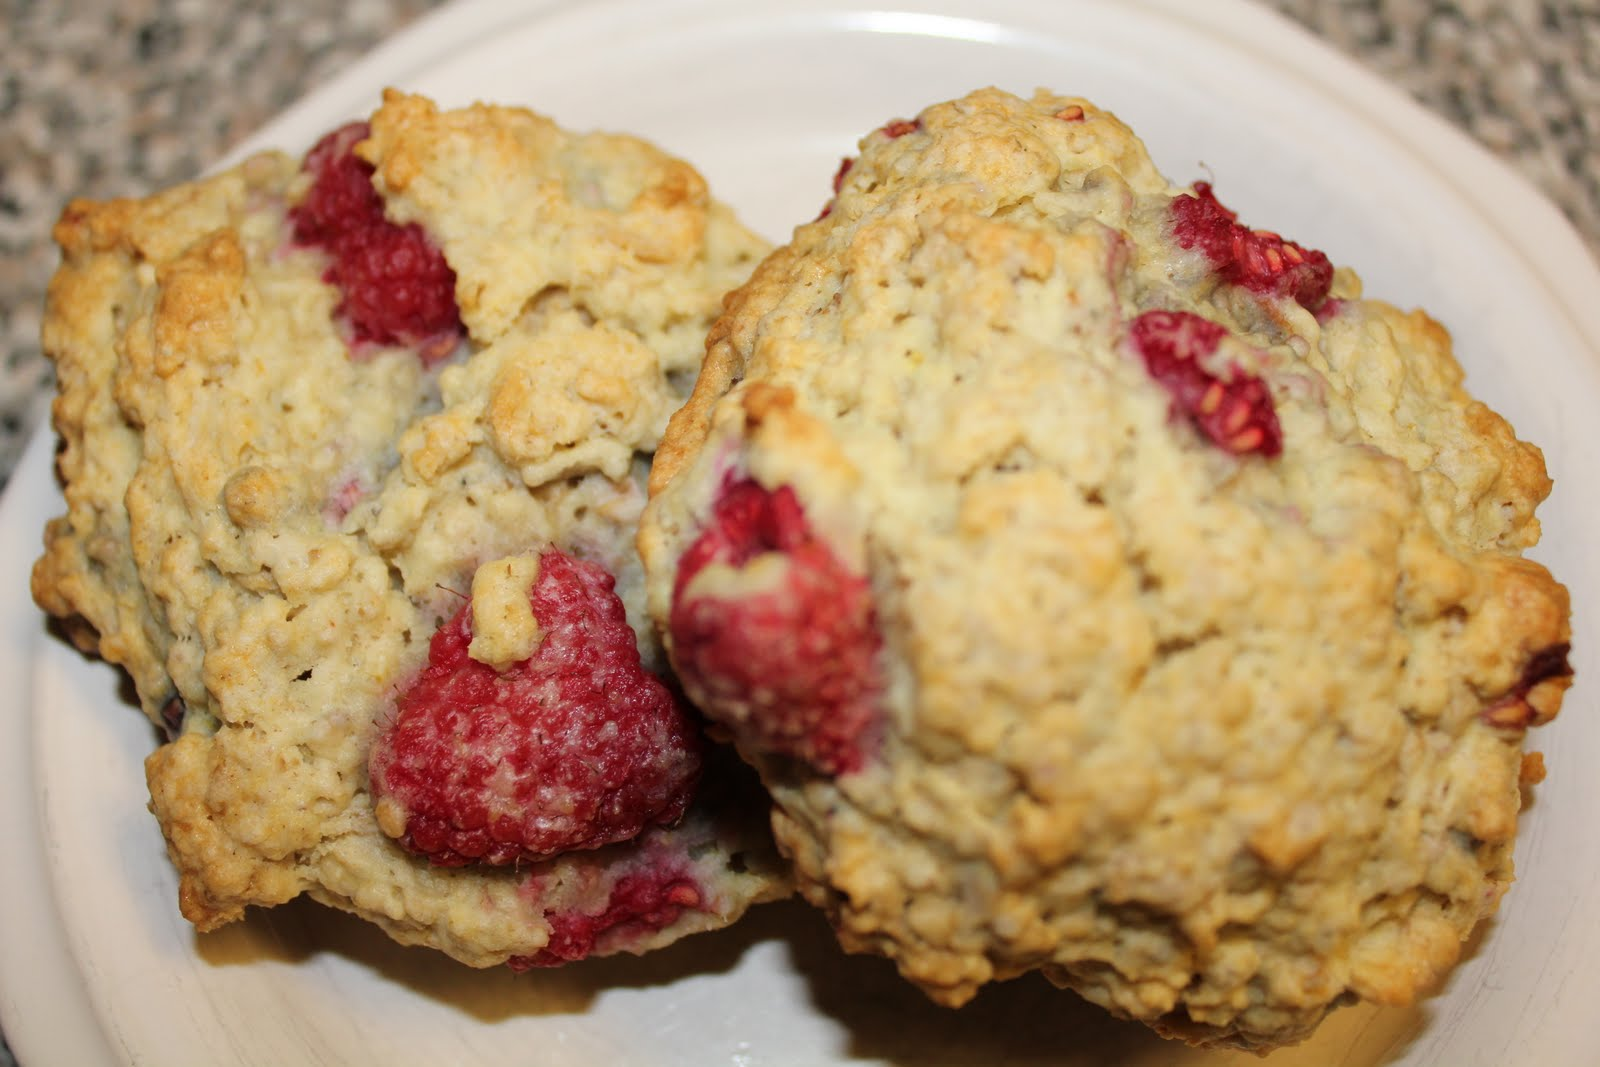 Counting My Cupcakes: Oatmeal Raspberry Chocolate Chip Scones